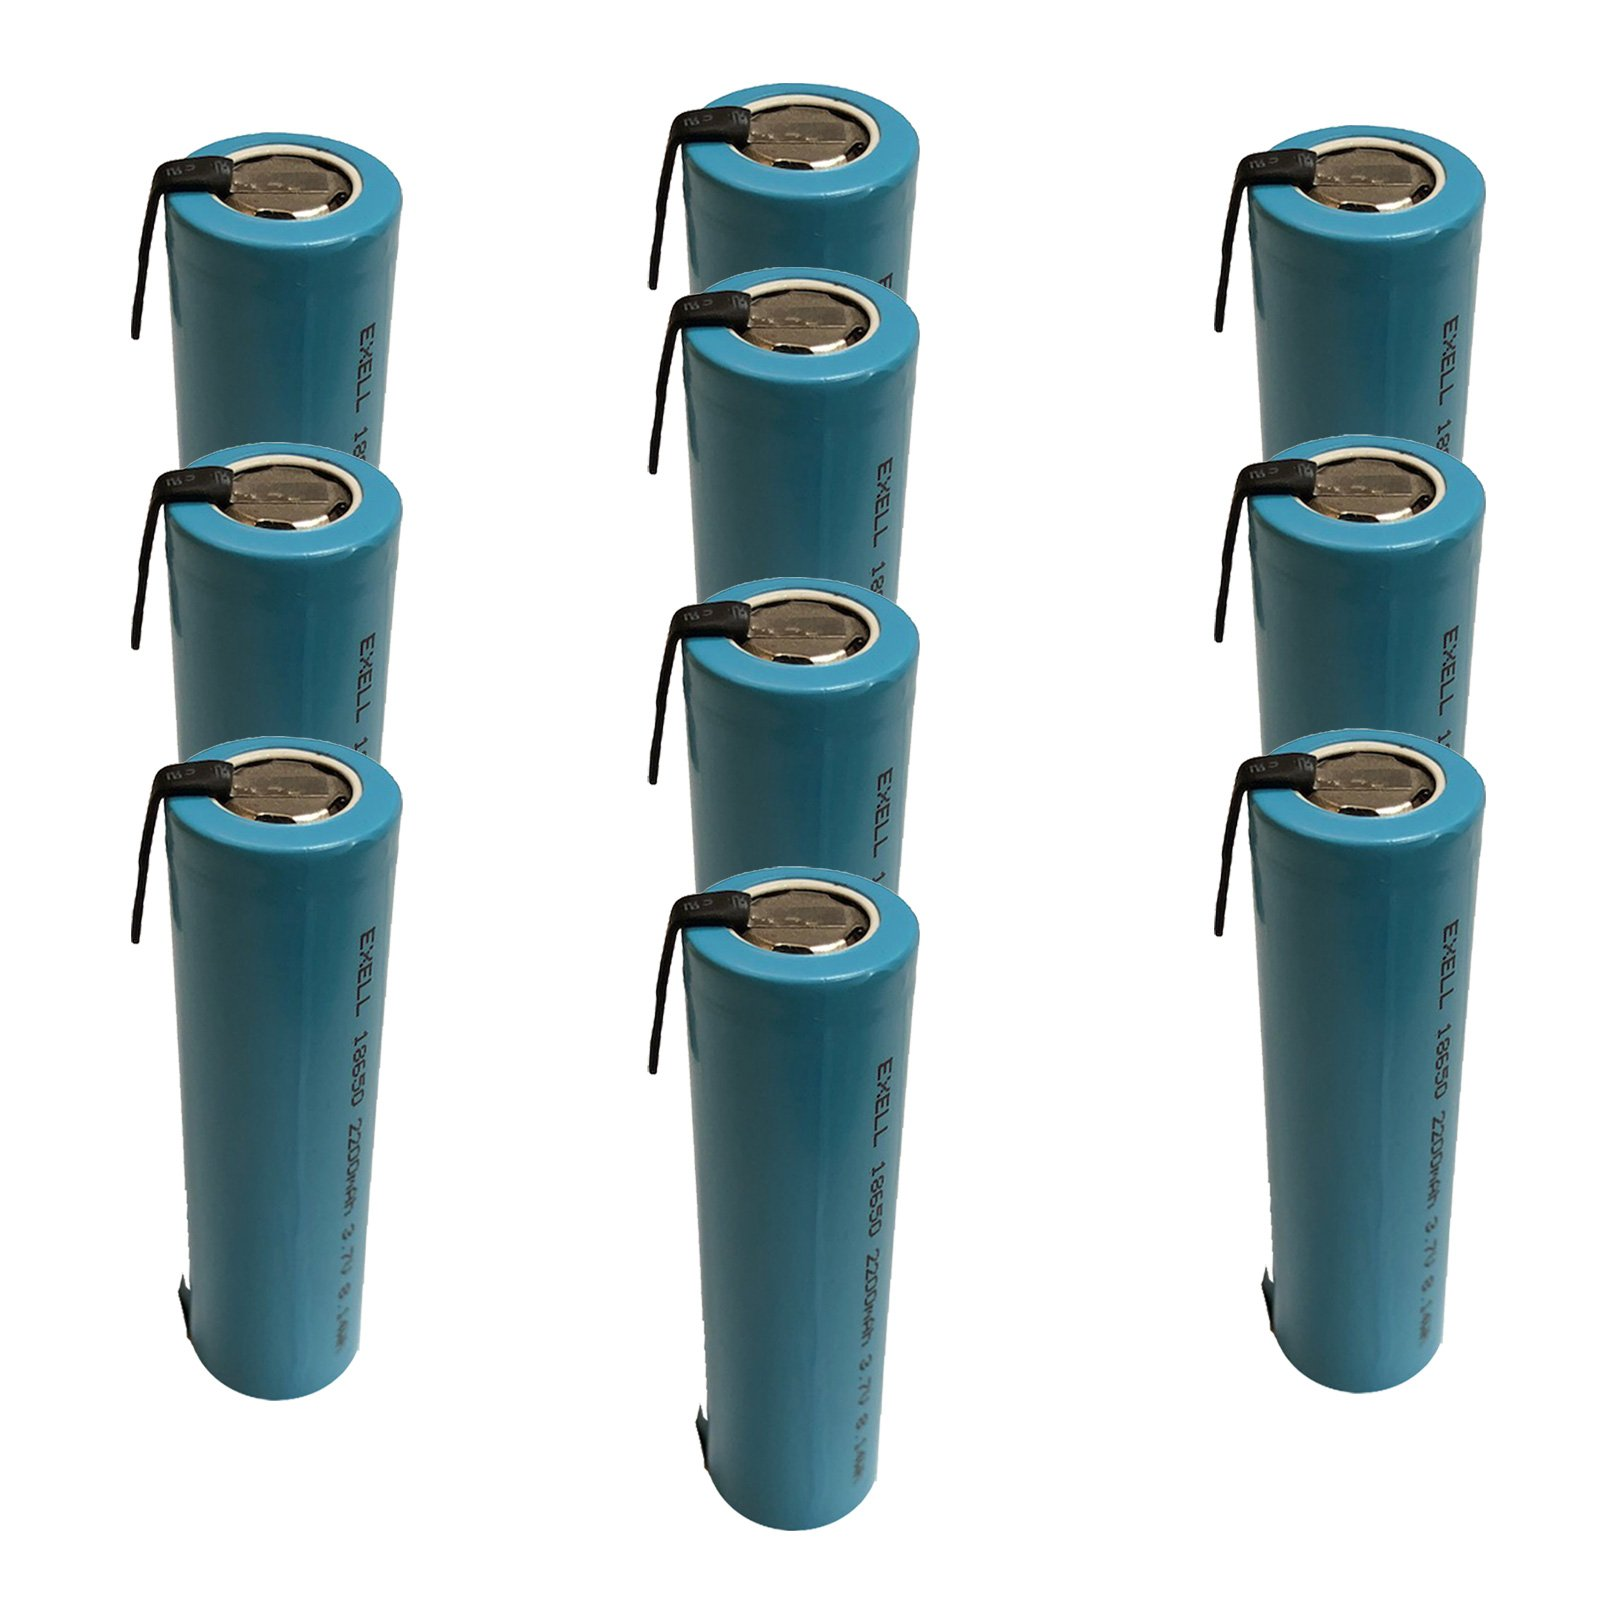 10x Exell 3.7V ICR18650 2200mAh Battery with Nickel Tabs For Solar Path Lights